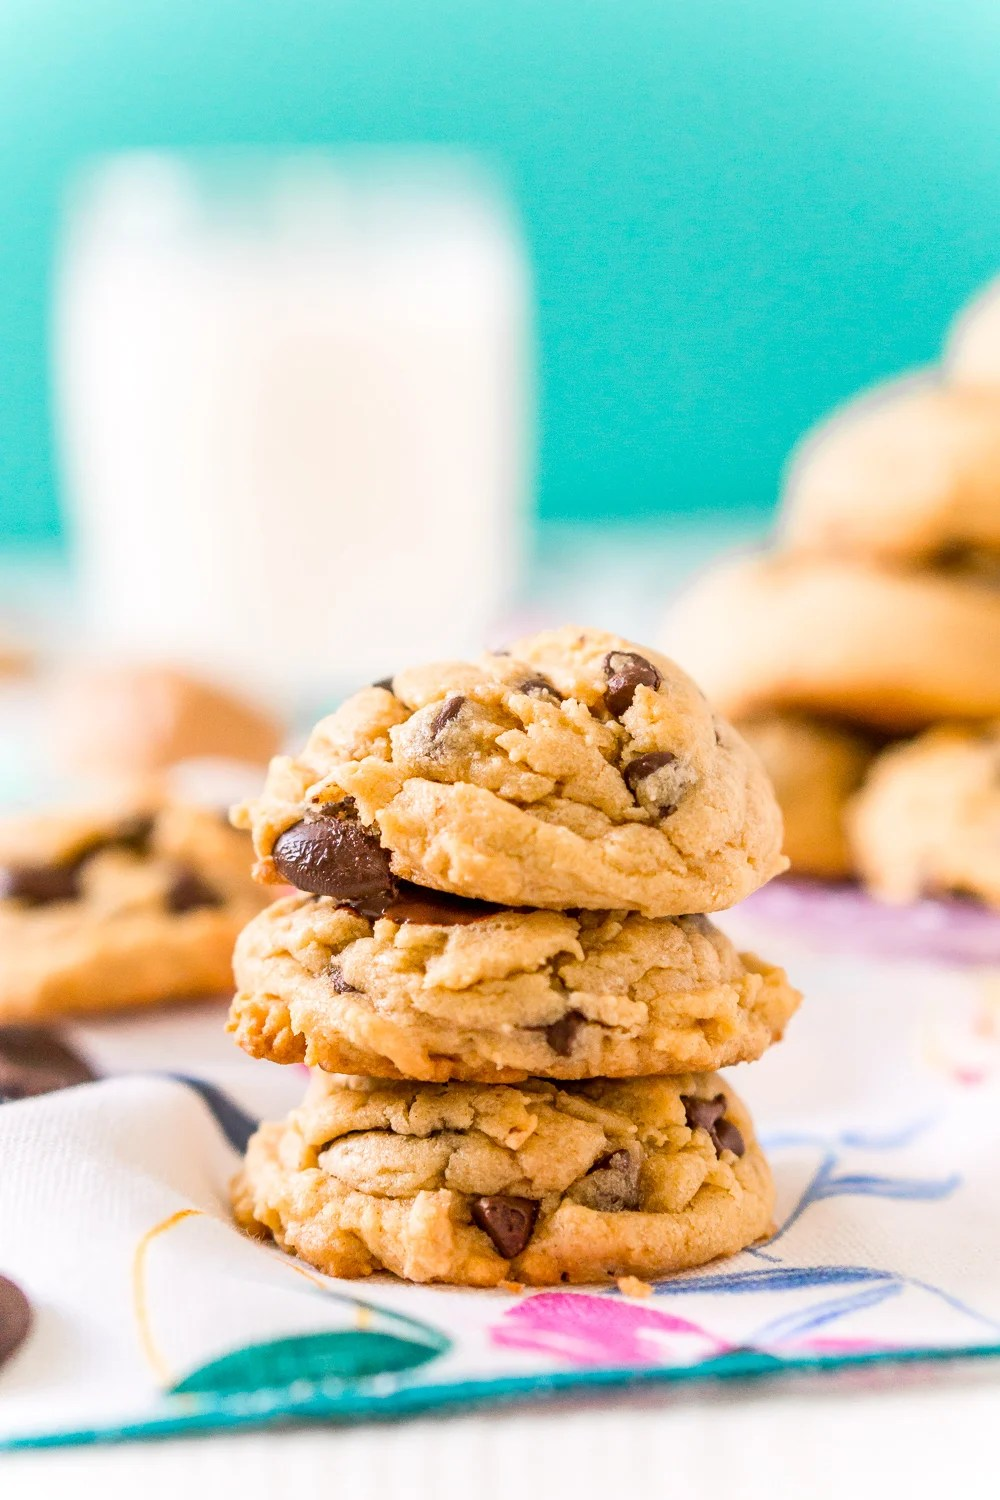 Three Peanut Butter Chocolate Chip Cookies stacked on top of each other with milk and more cookies in the background.